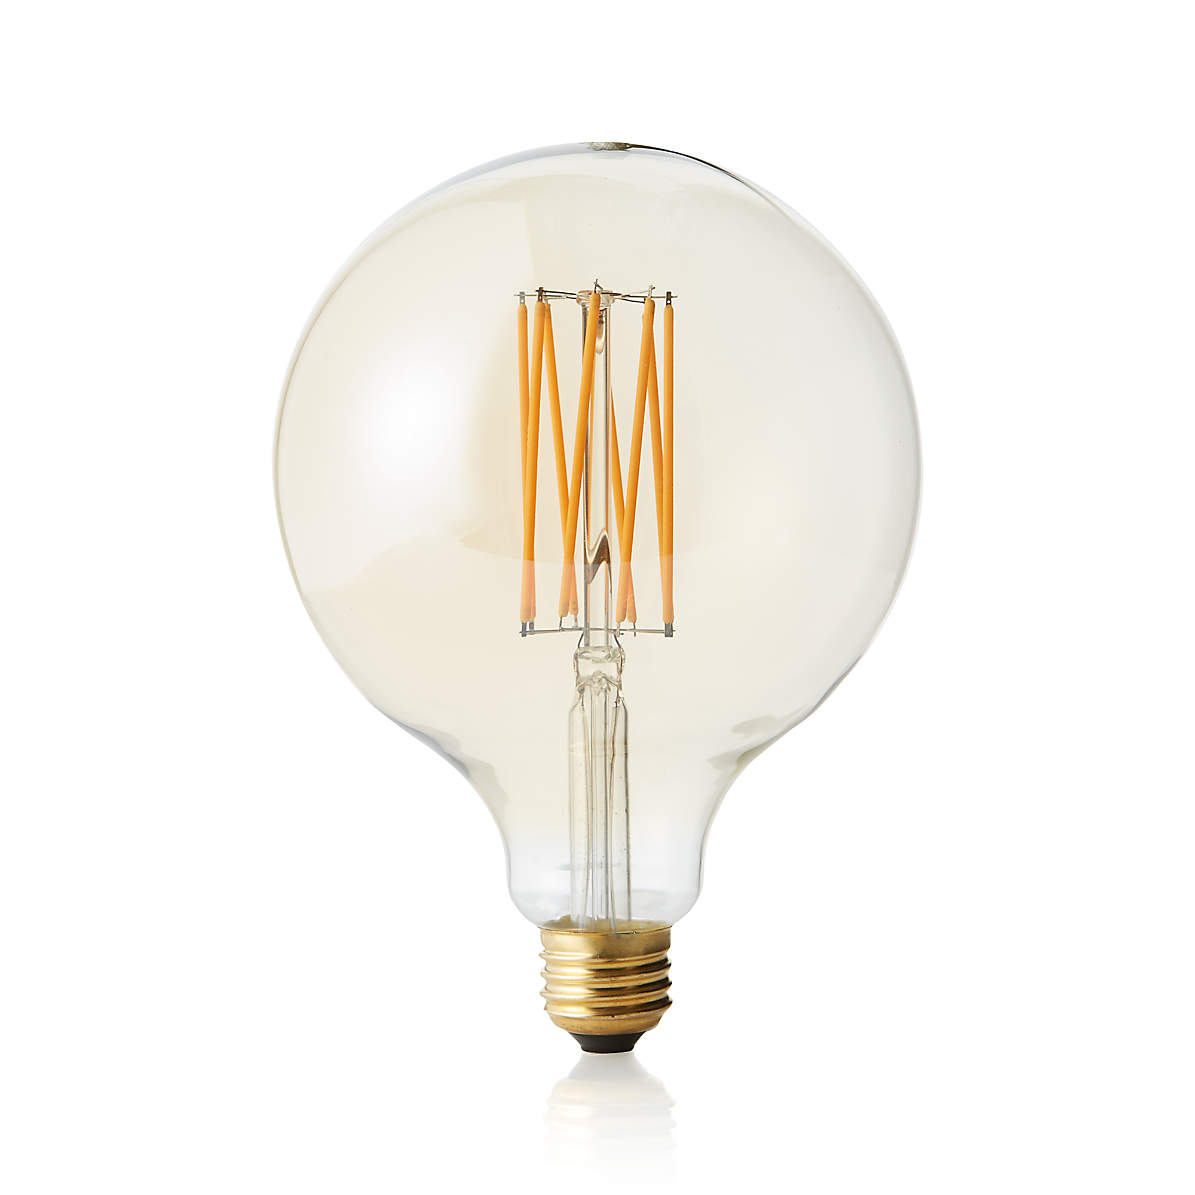 Tala Gaia Tinted 6 Watt Dimmable Led Vintage Bulb Reviews Crate And Barrel